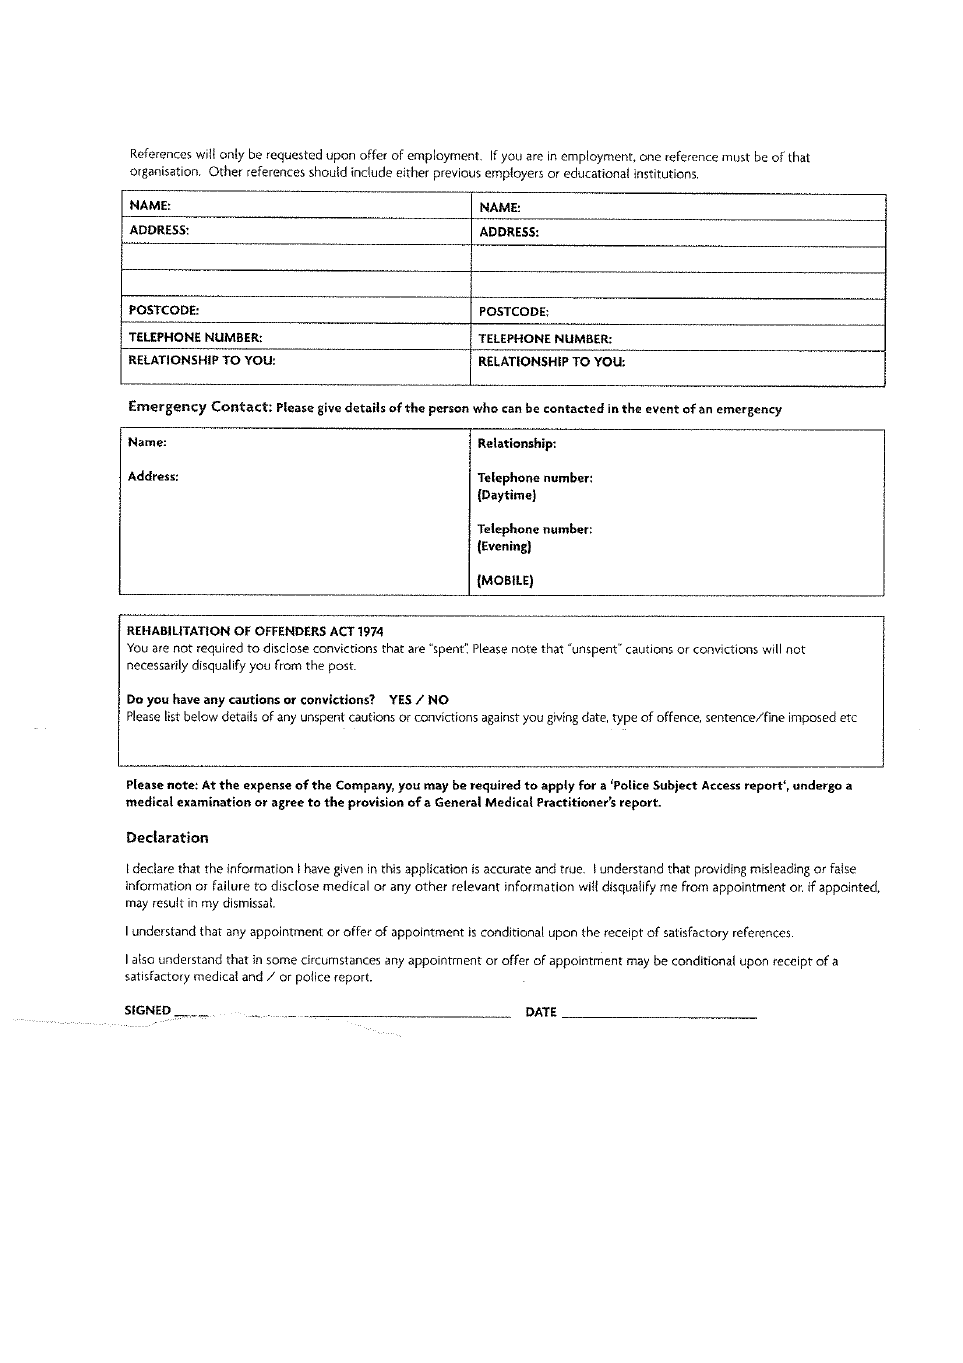 Matalan Employment Application Form Free Download